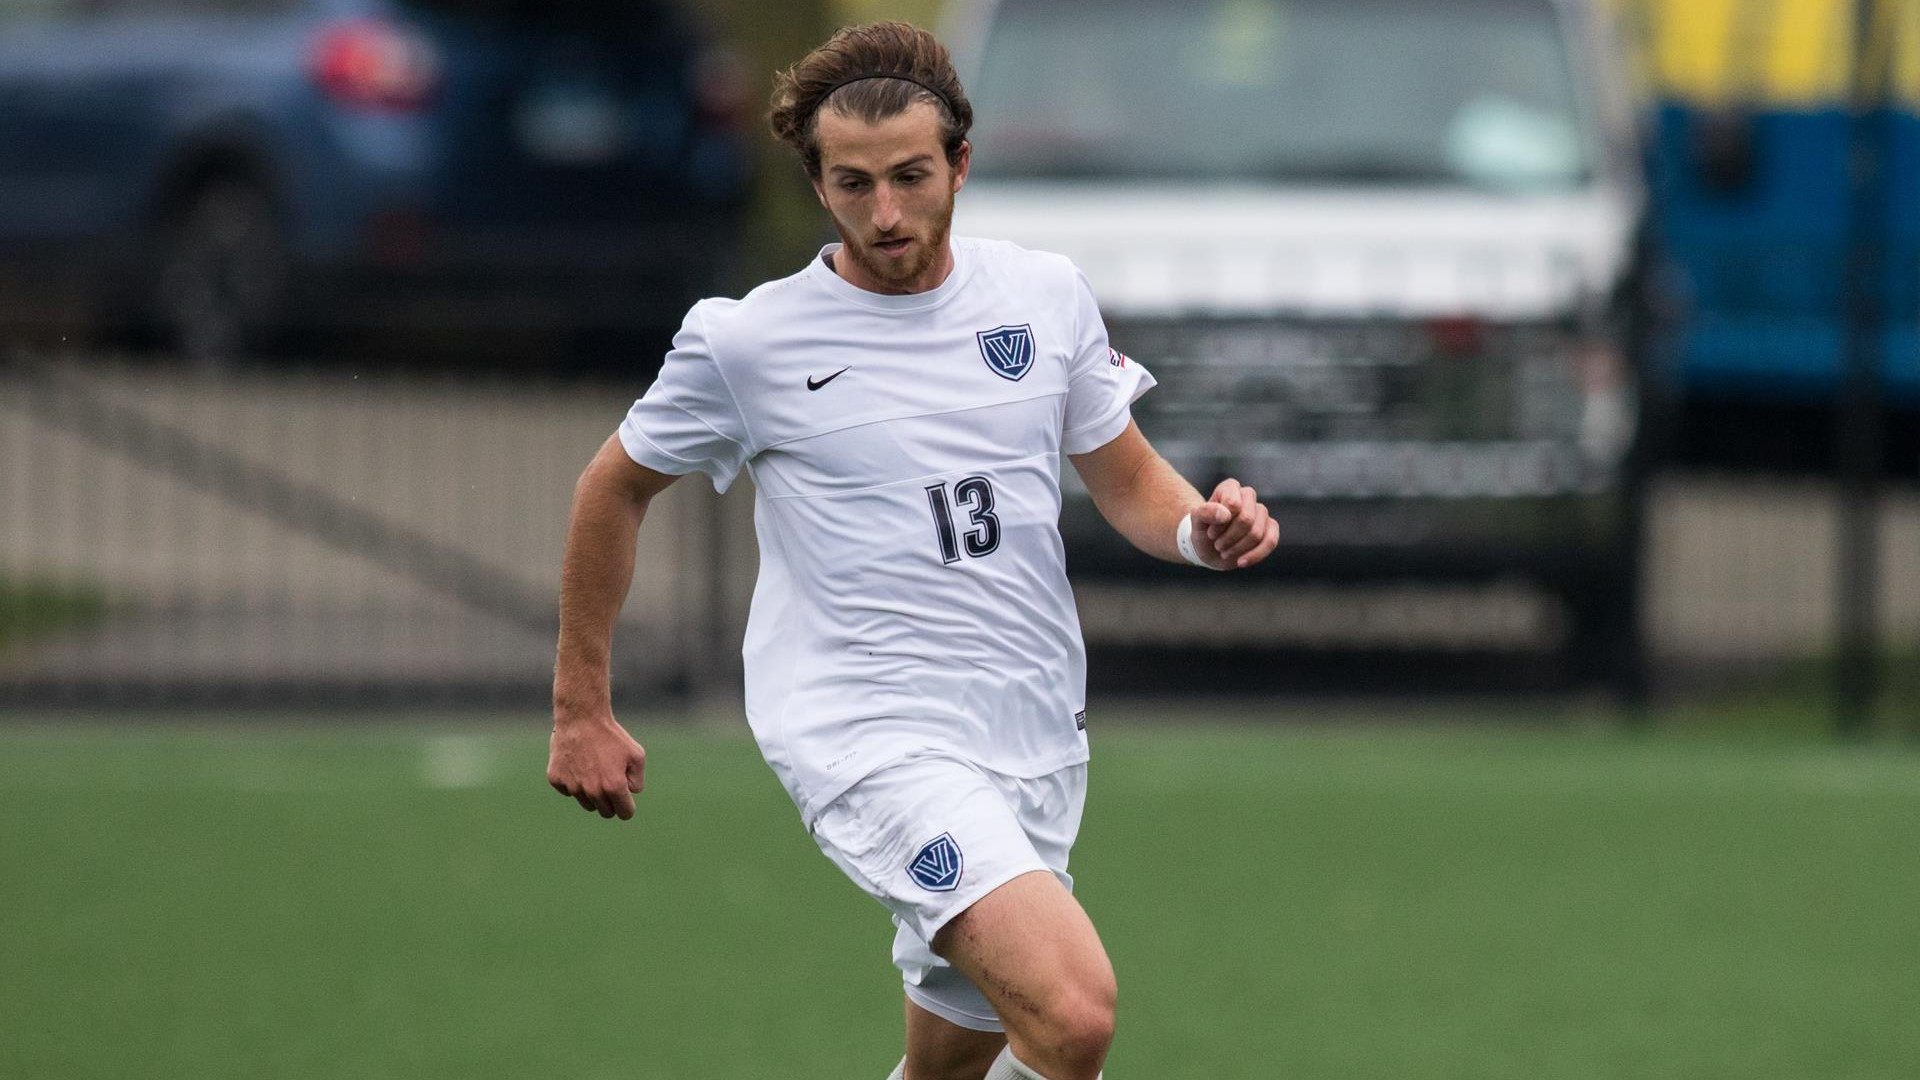 be0a1332b88 Bared Selected by Sounders FC in MLS Superdraft - Villanova ...